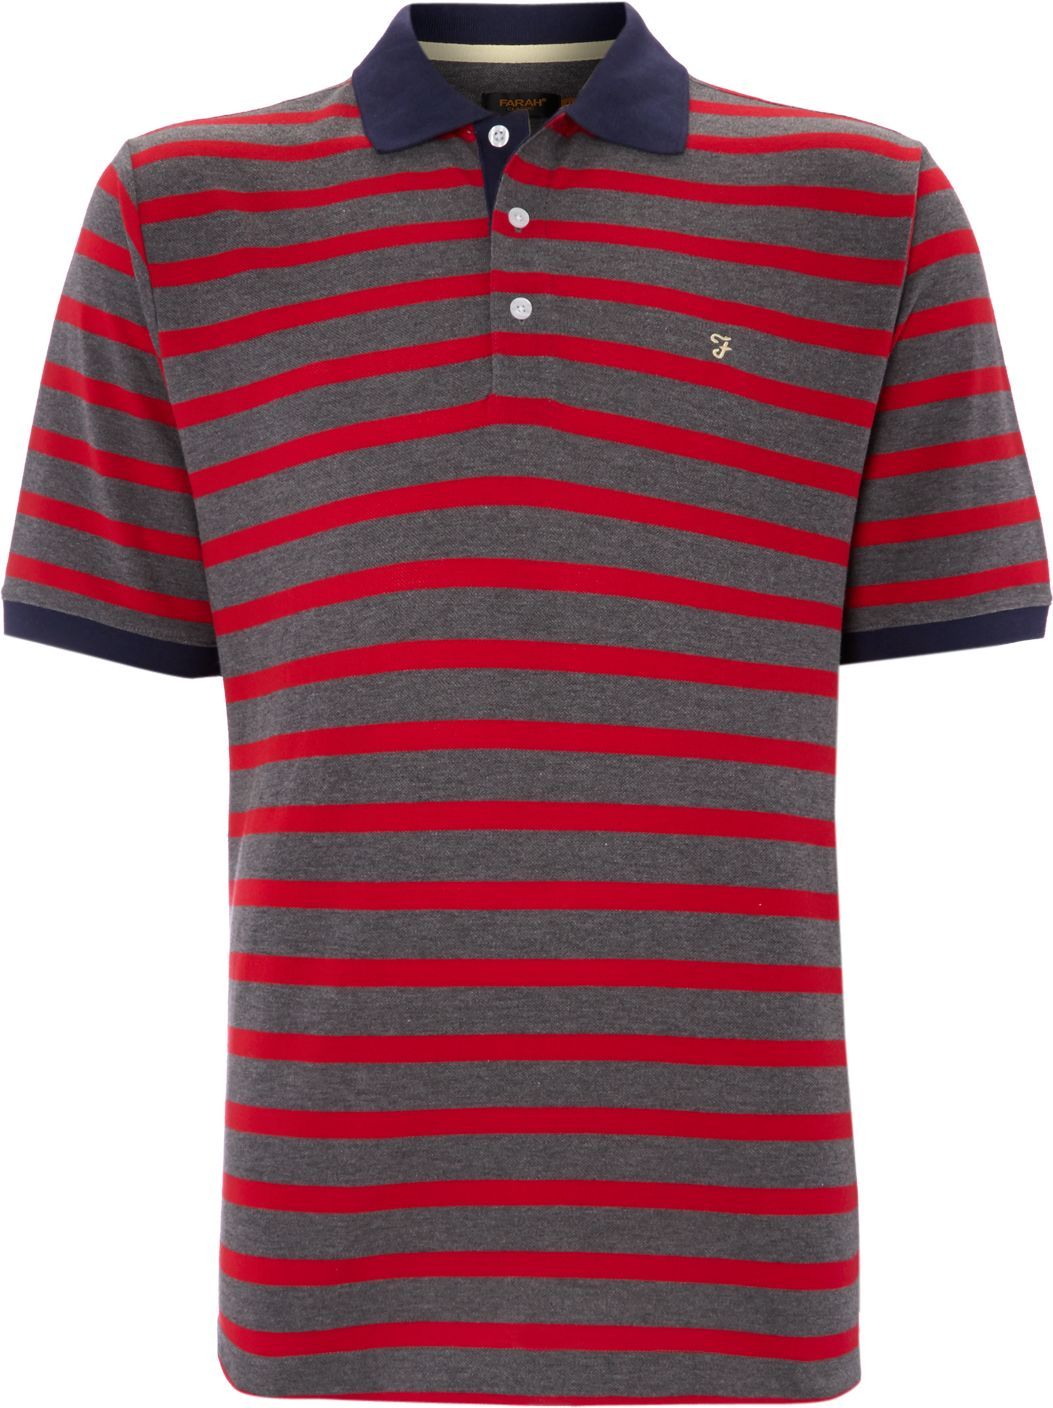 Brightman polo